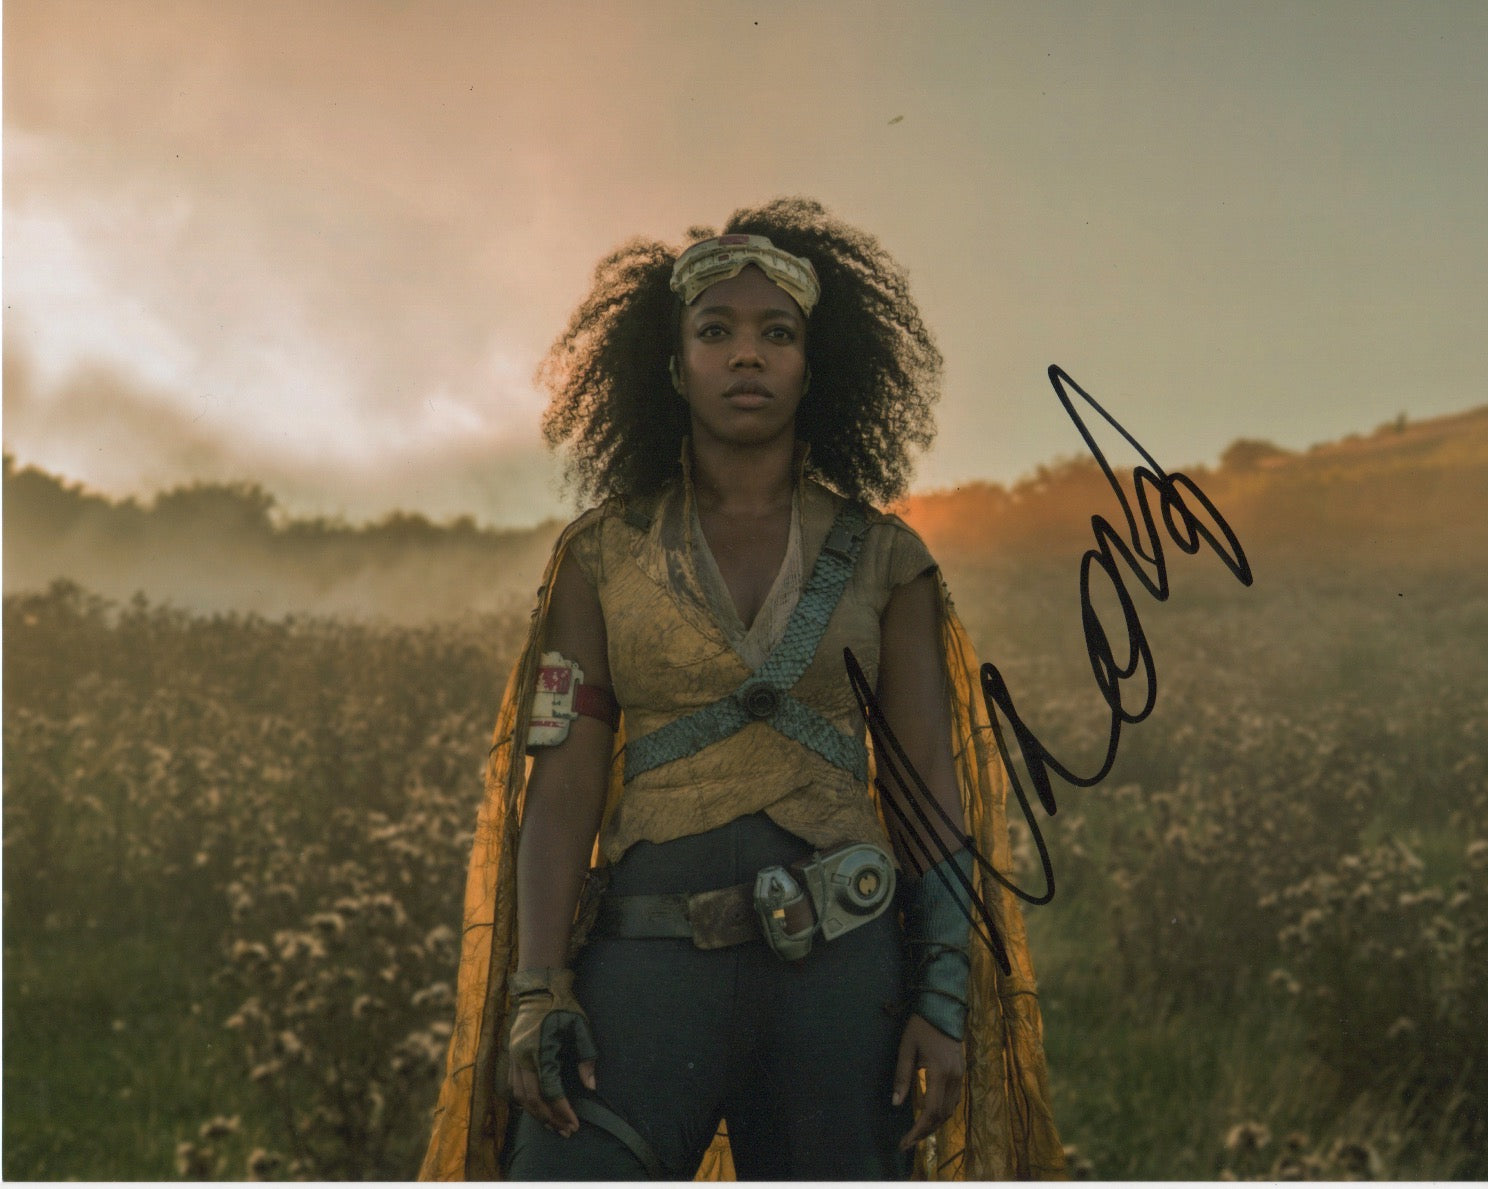 Naomi Ackie Star Wars Signed Autograph 8x10 Photo #2